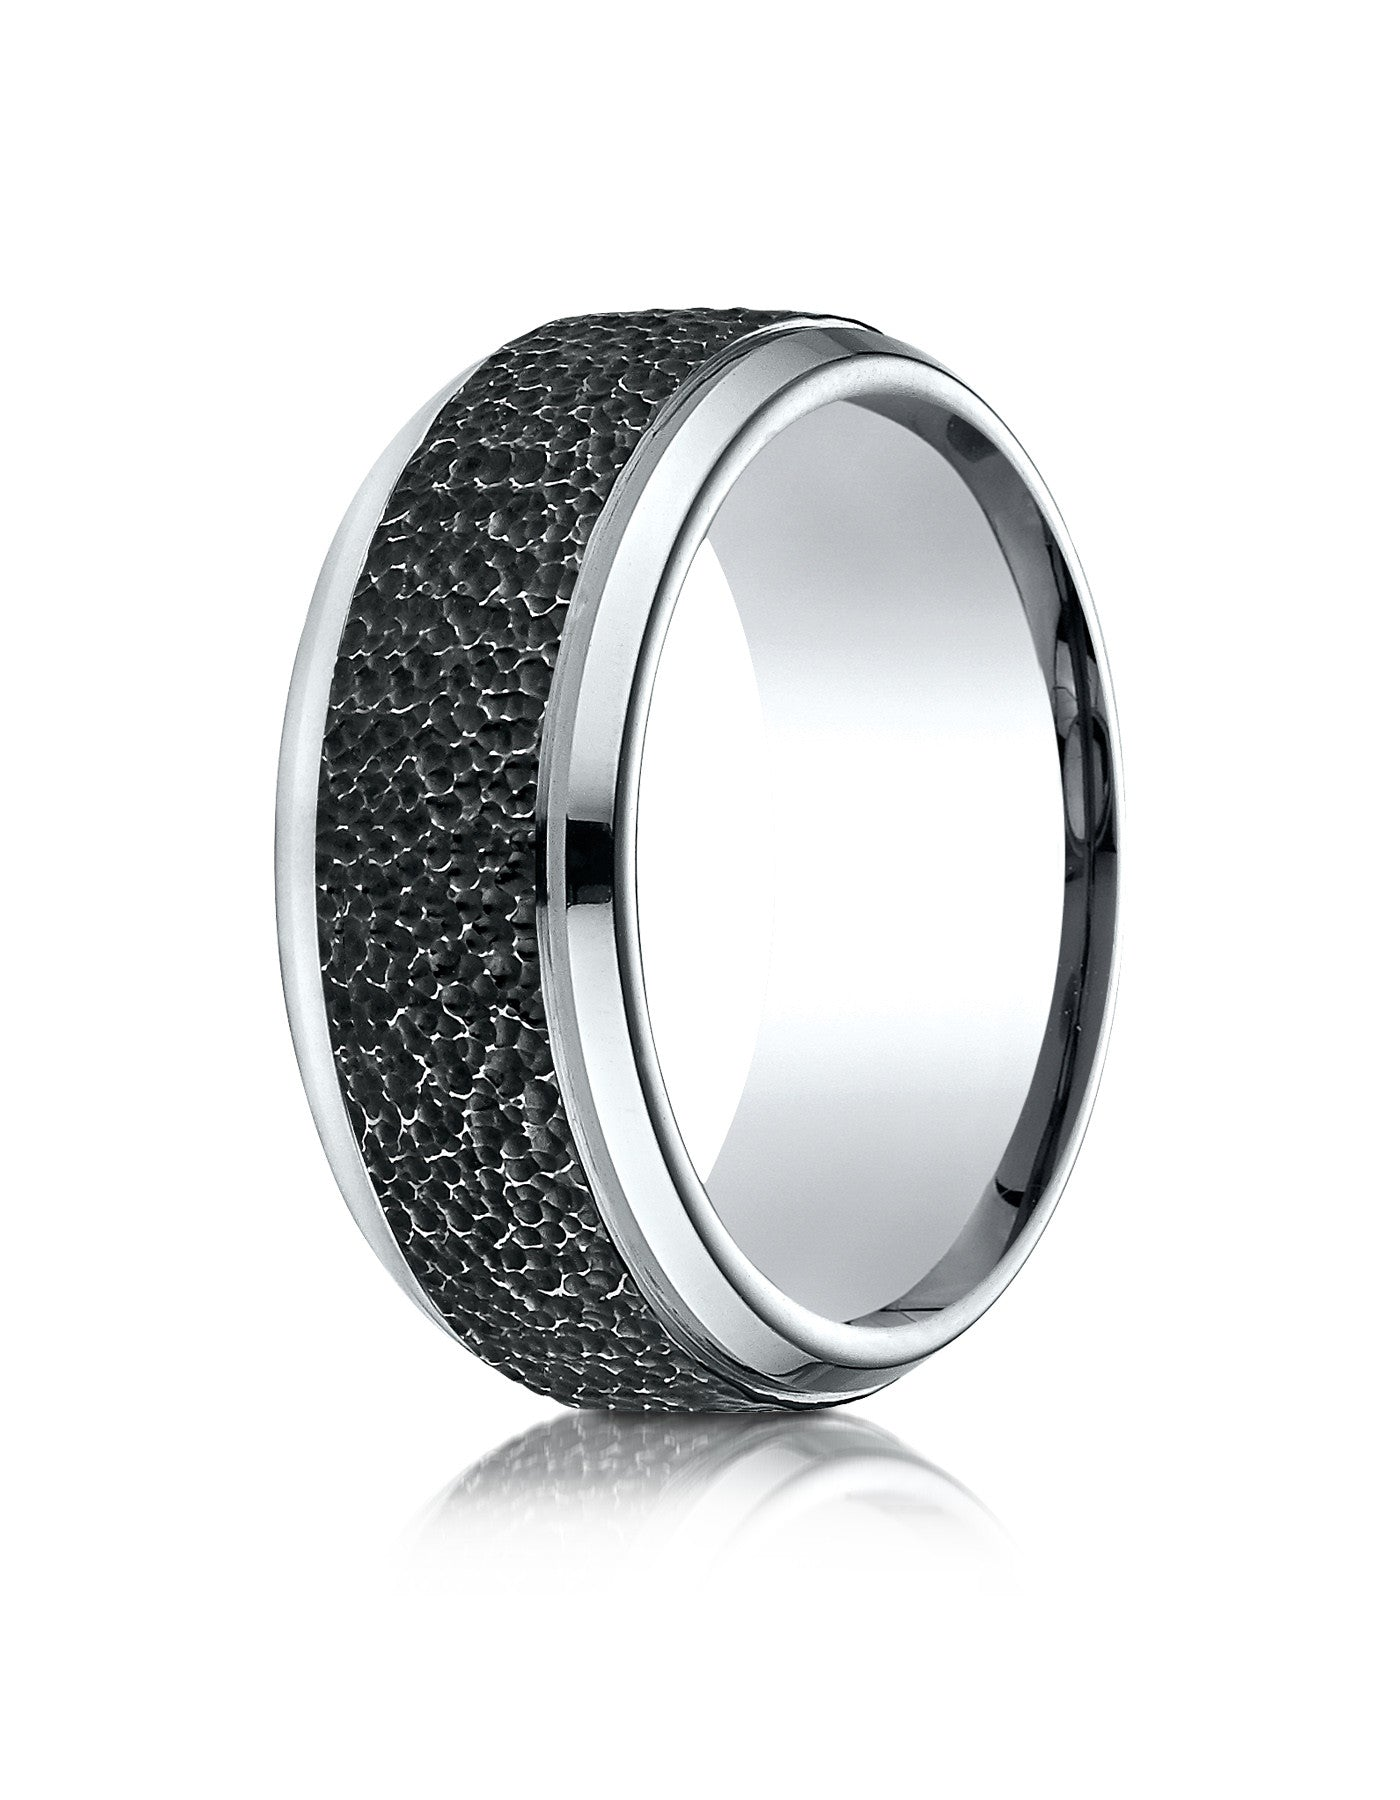 bands for men cheap wedding full meaning size download black mens titanium rings beautiful inspirational